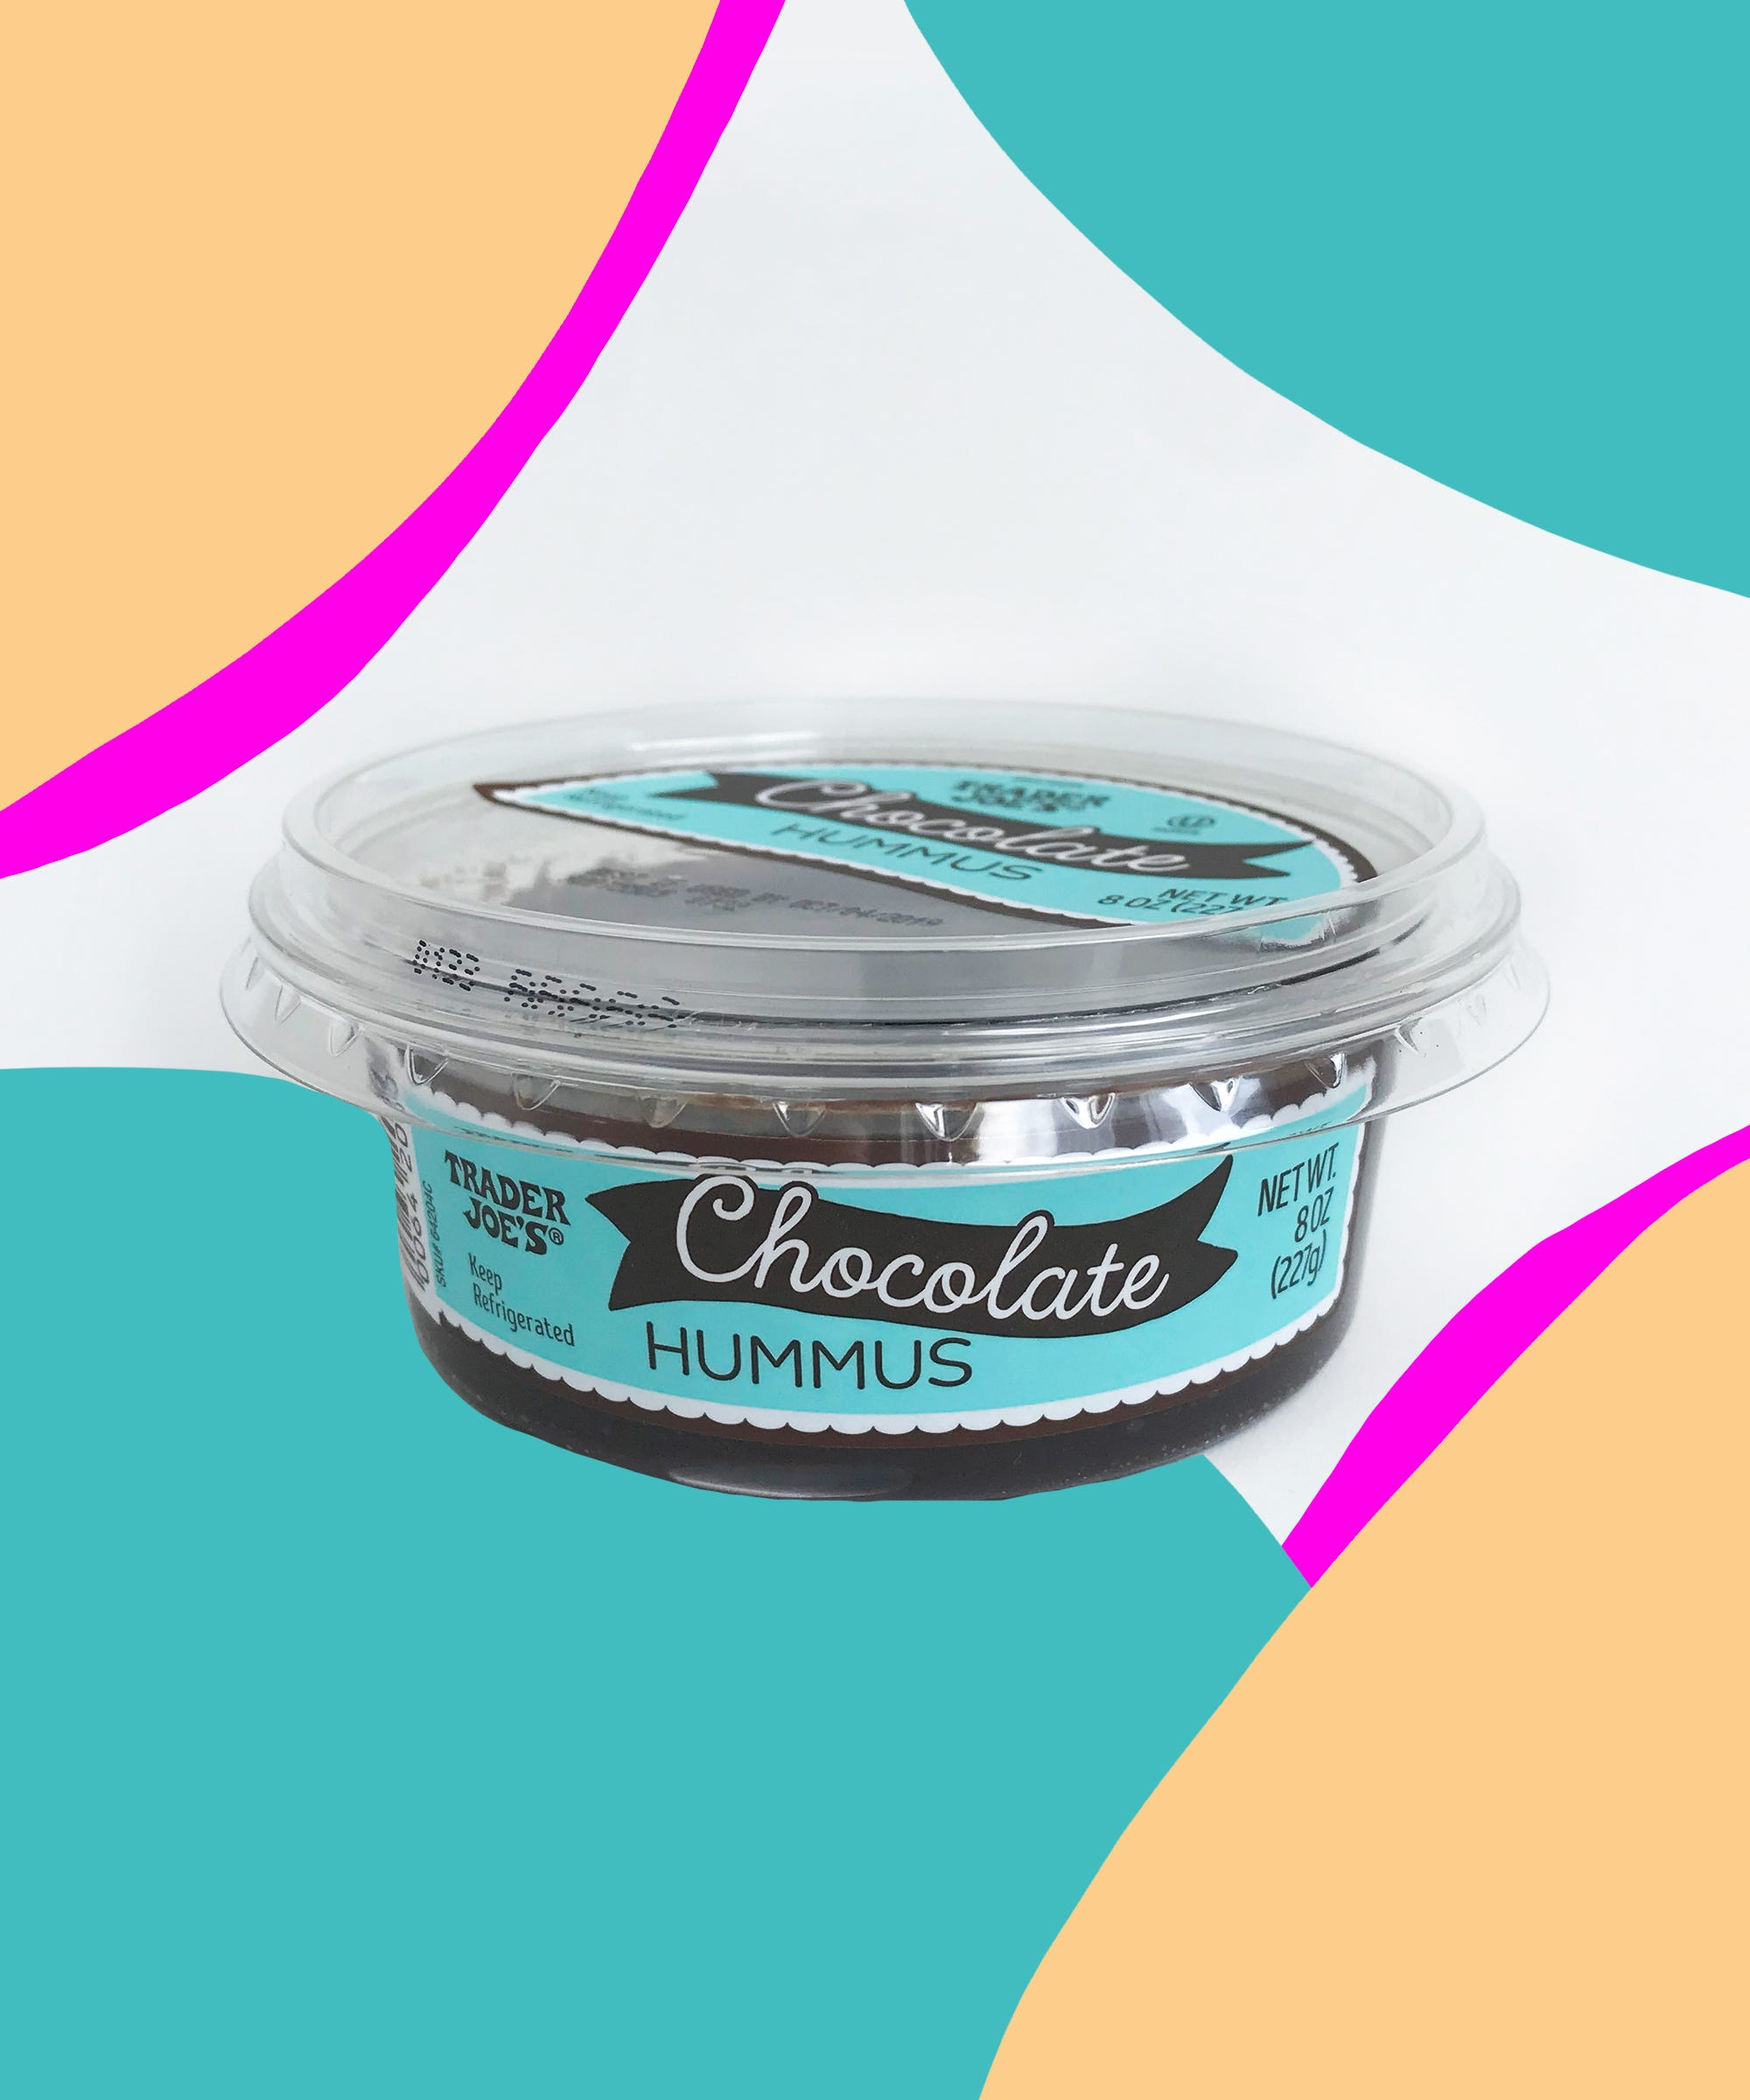 We Tried Trader Joe's New Chocolate Hummus So You Don't Have To